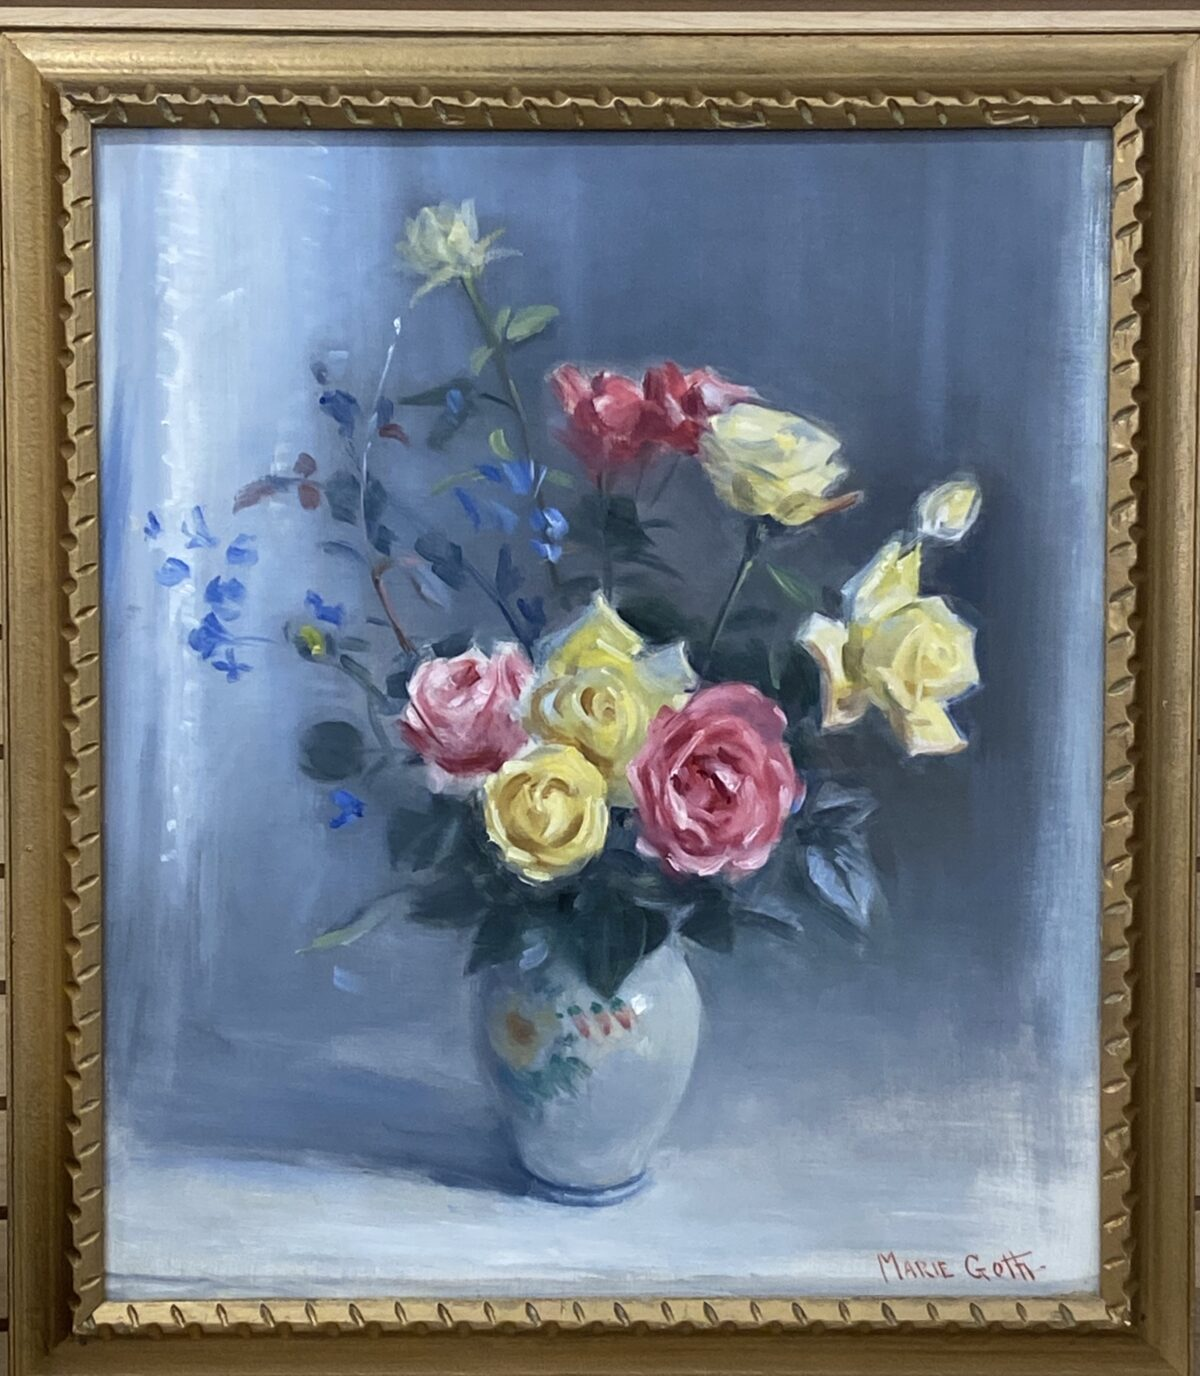 179 - Roses in Blue after Marie Goth - 11 x 14 - Still Life - $225